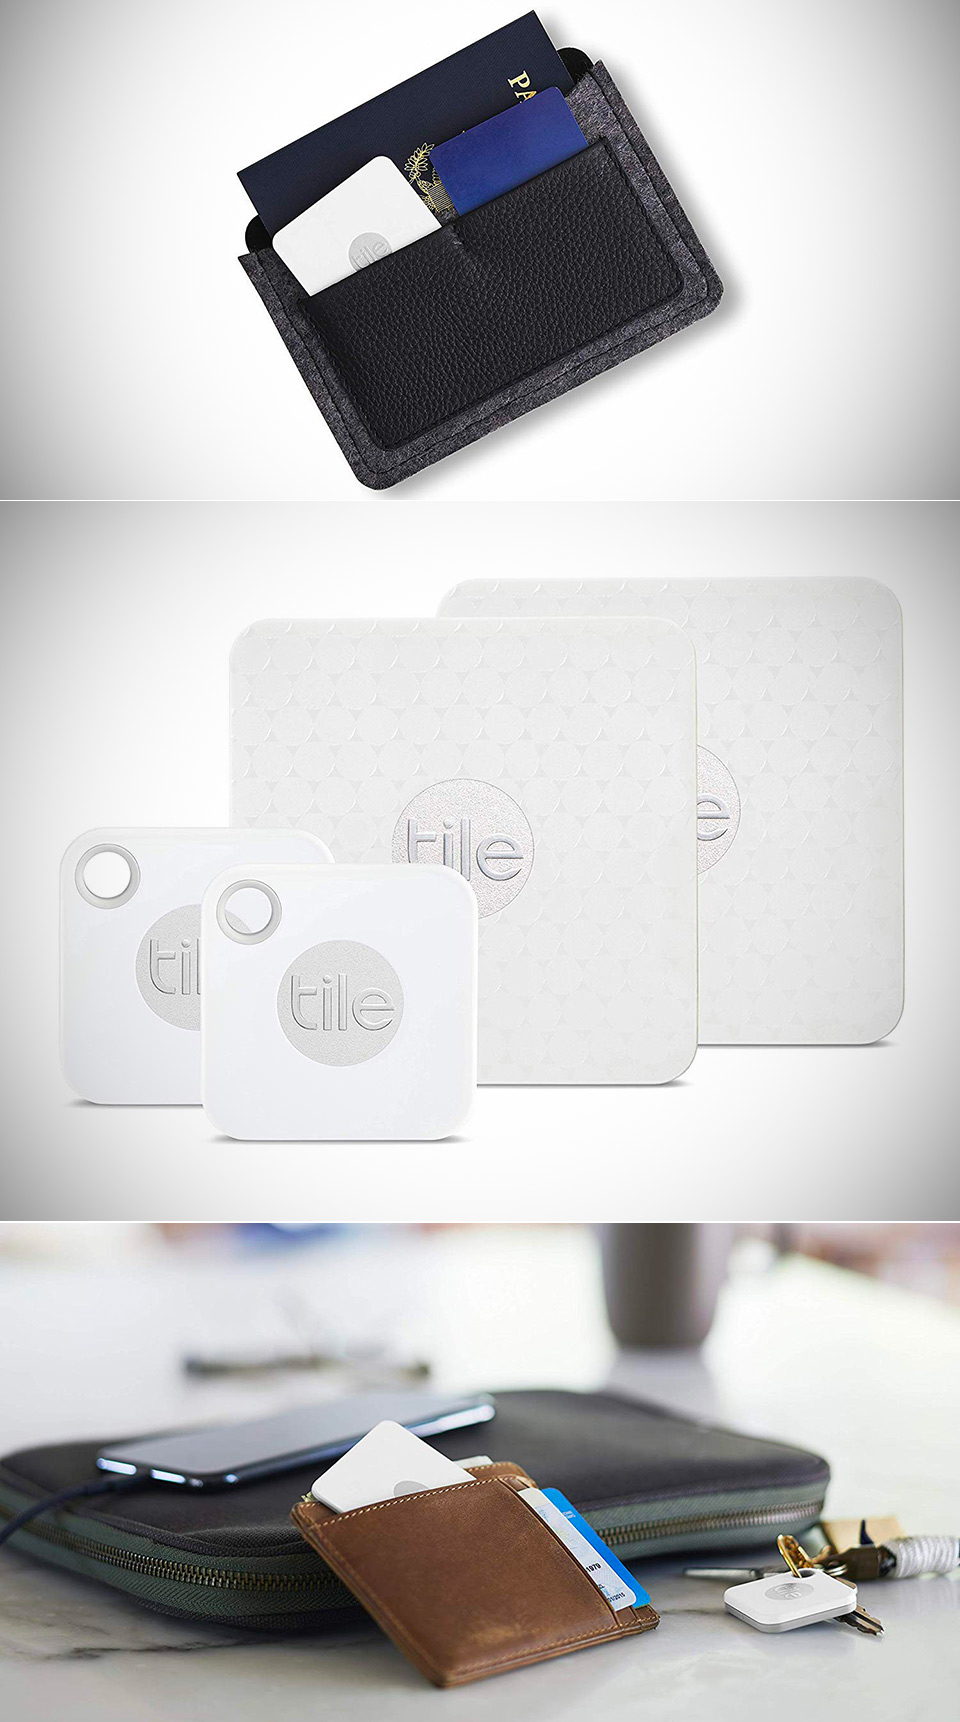 Tile Mate Slim